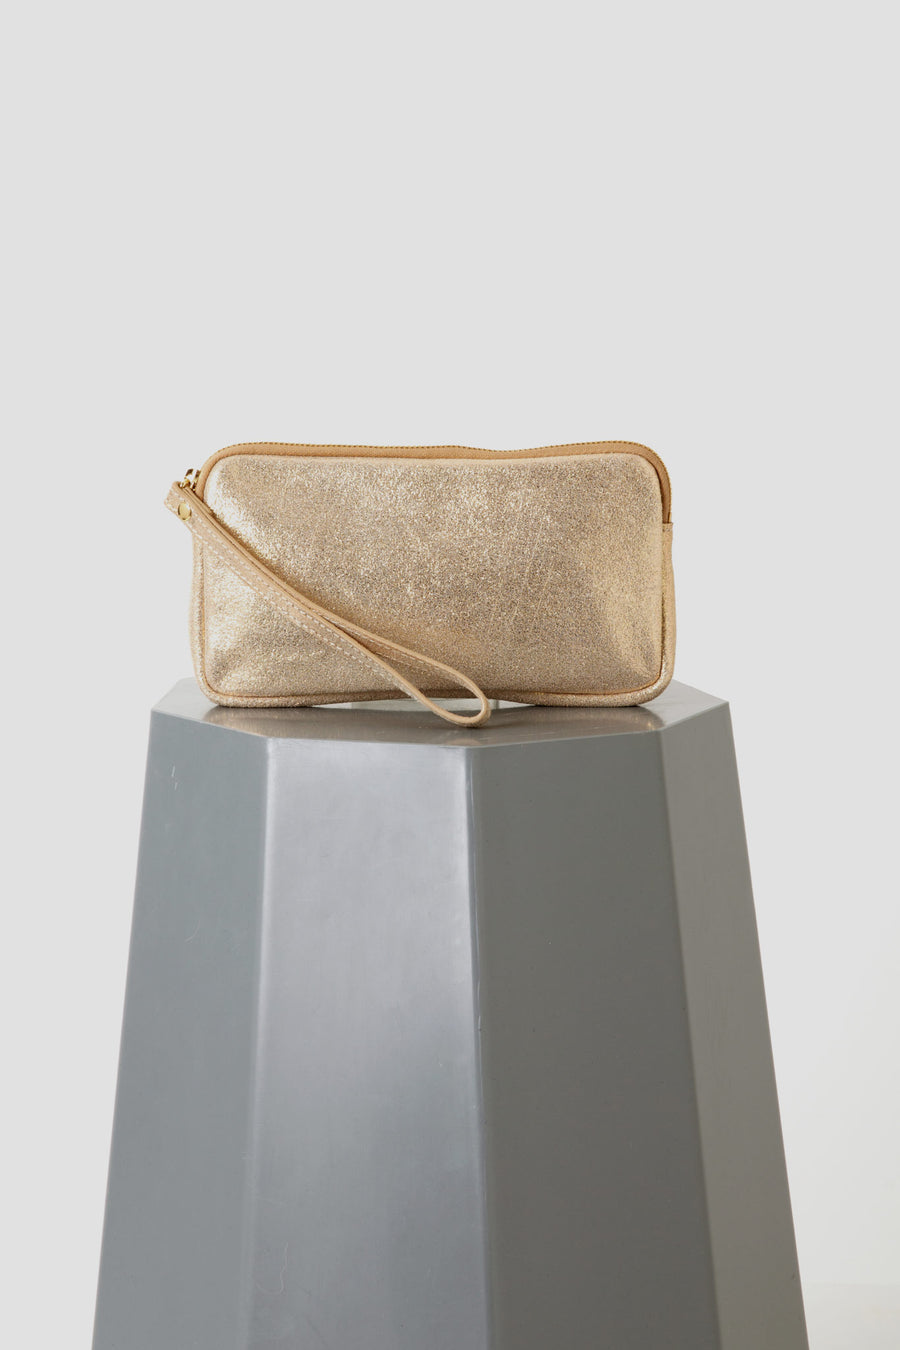 Vash - Palma Zip Pouch in Gold Leather